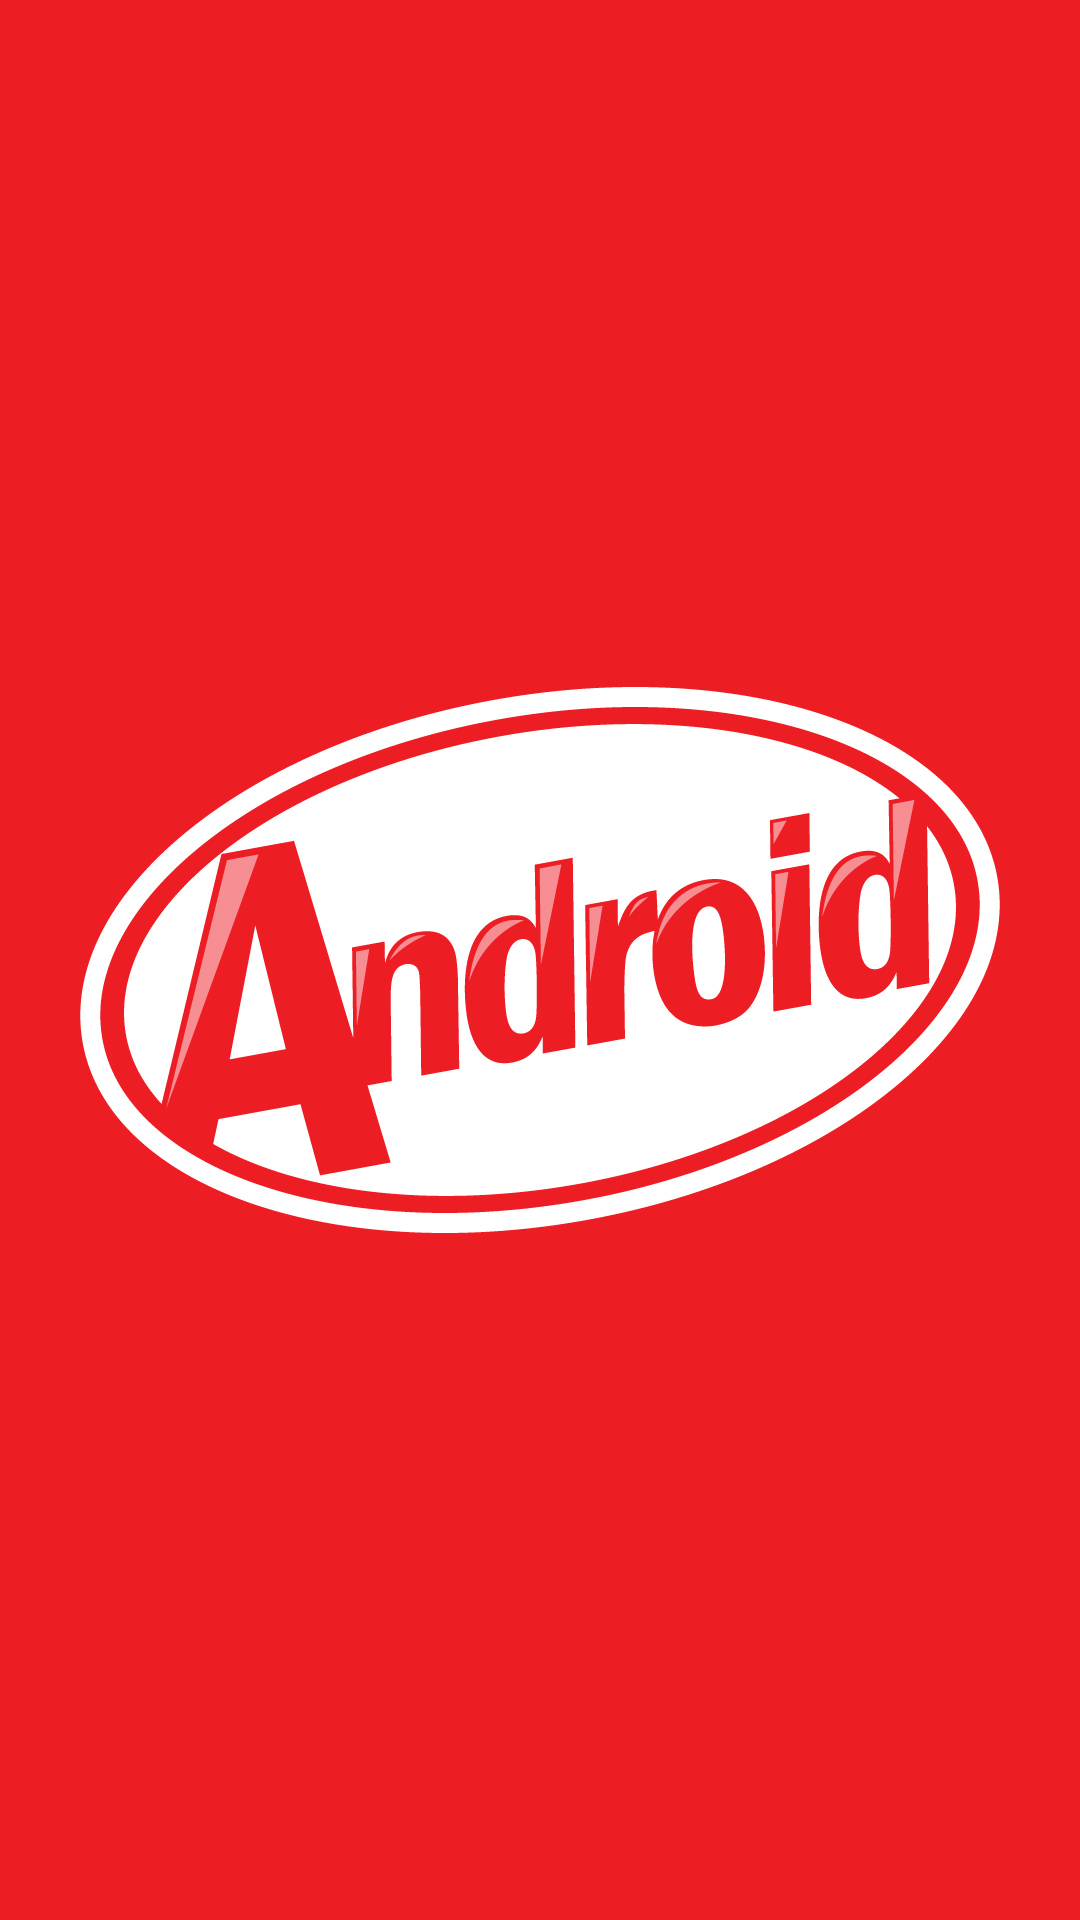 Android kitkat logo lockscreen smartphone wallpapers hd getphotos android kitkat logo lockscreen smartphone wallpapers hd voltagebd